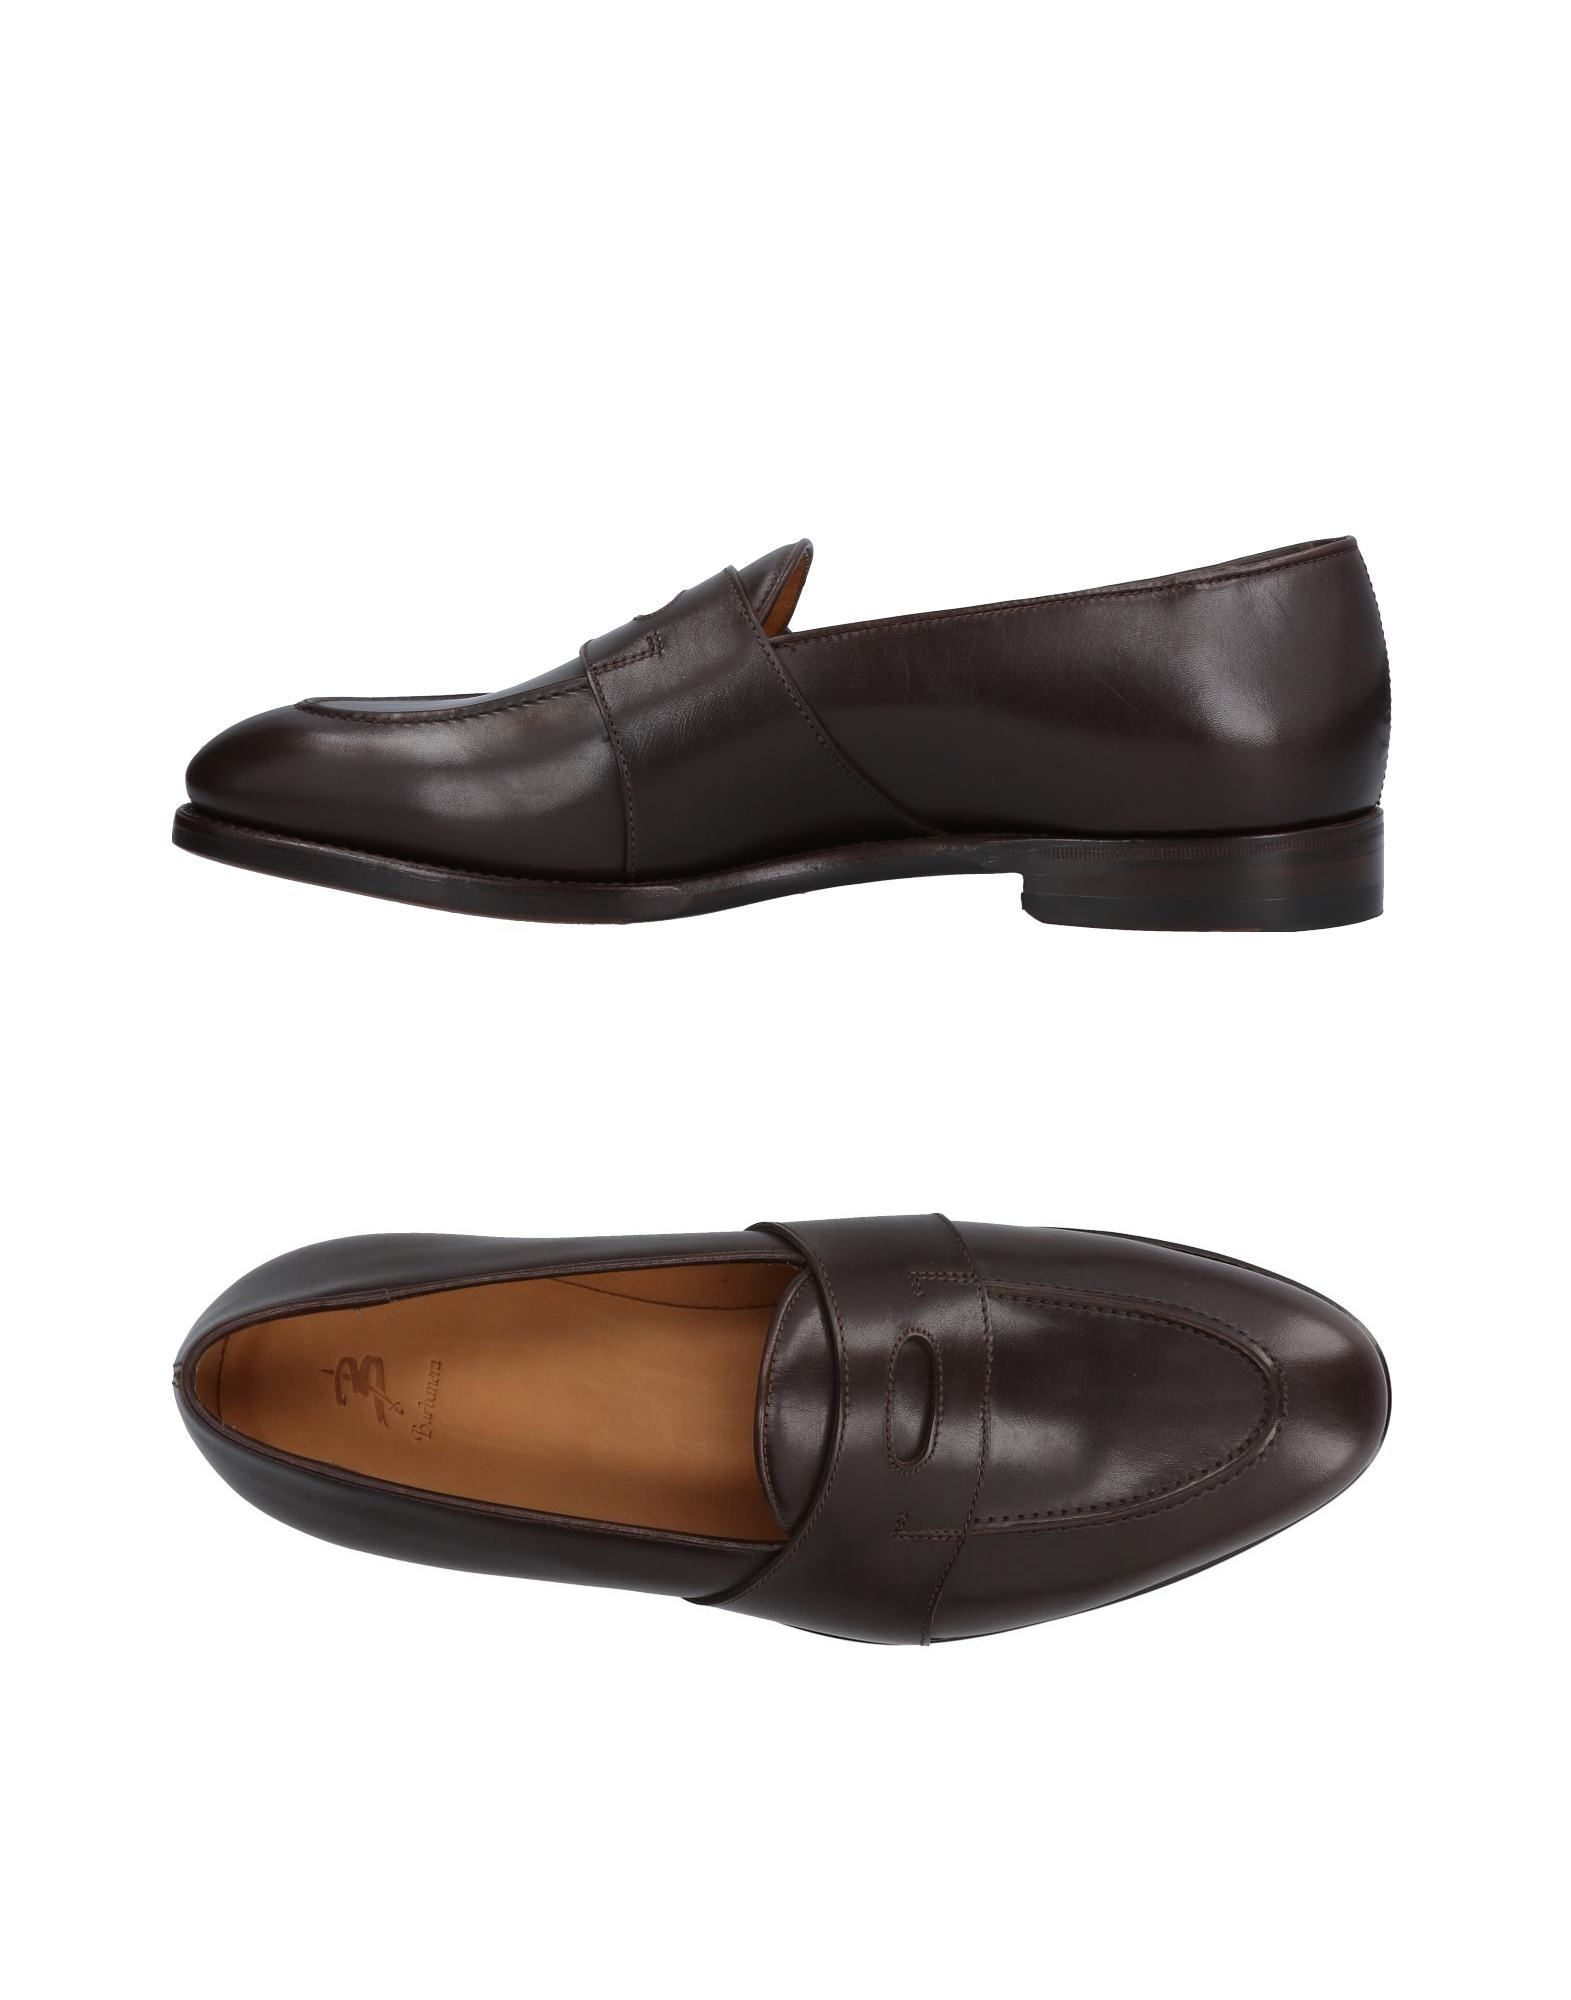 BARBANERA Loafers in Dark Brown